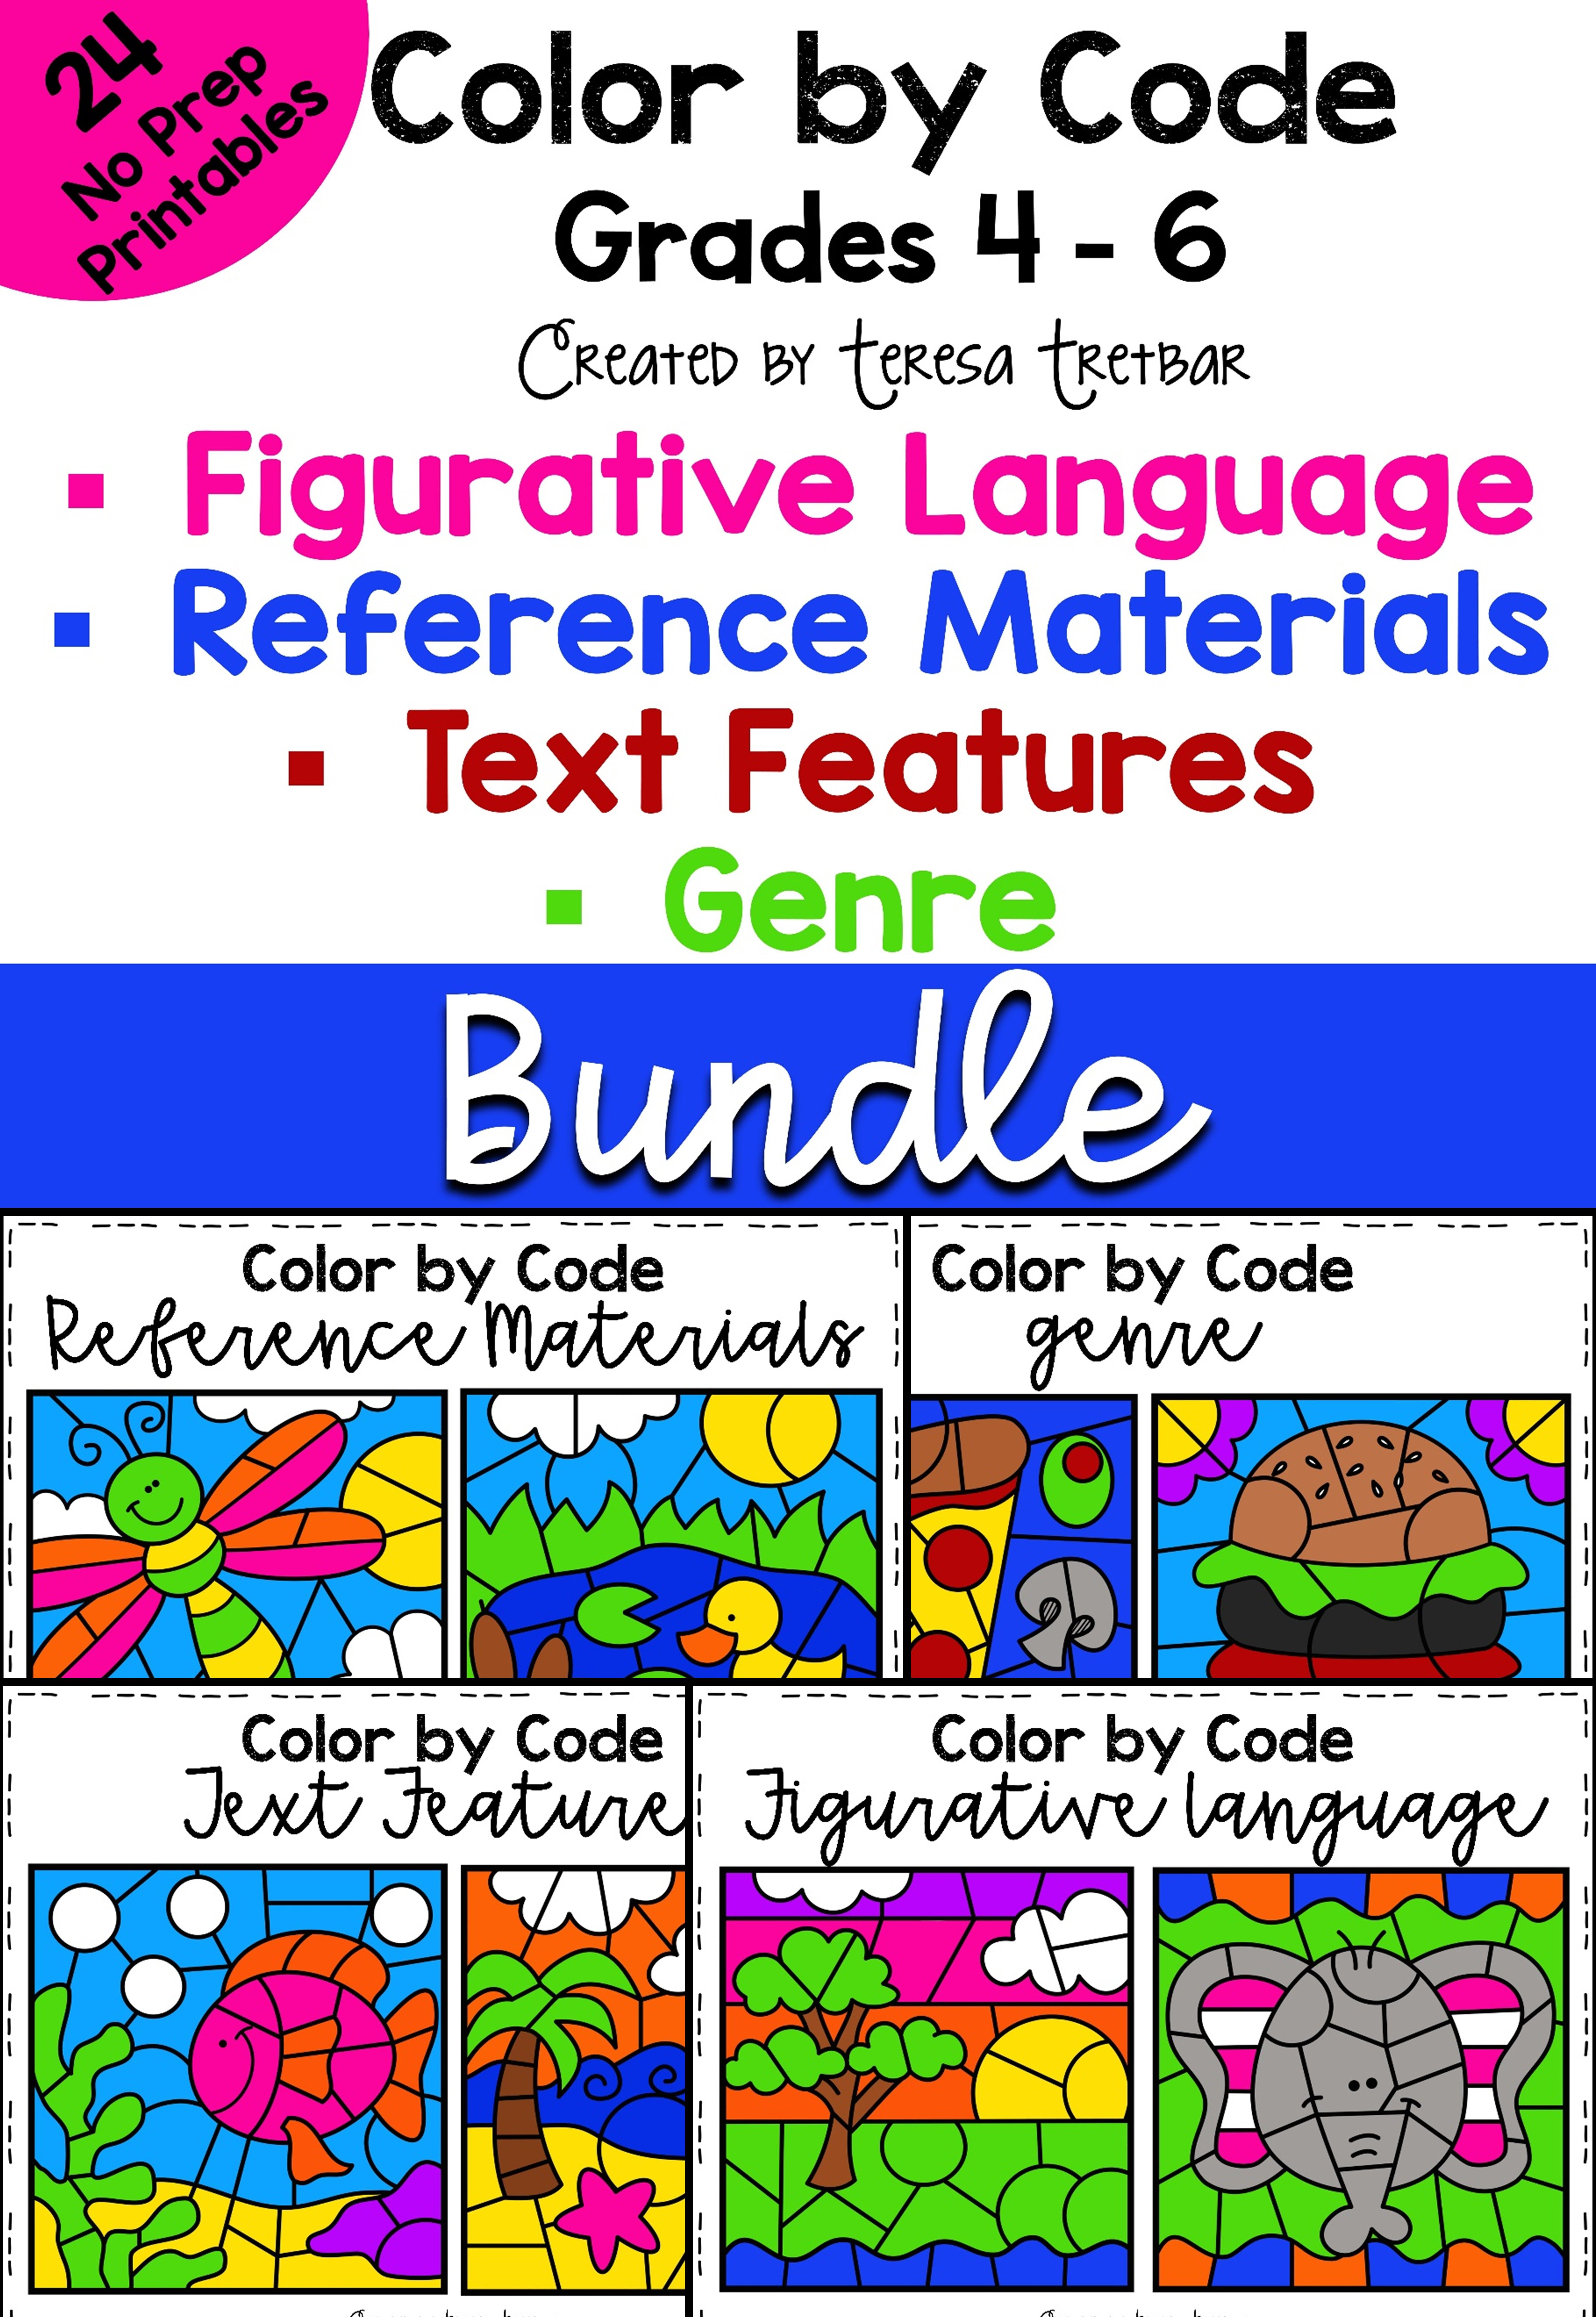 Figurative Language Genre Text Features Reference